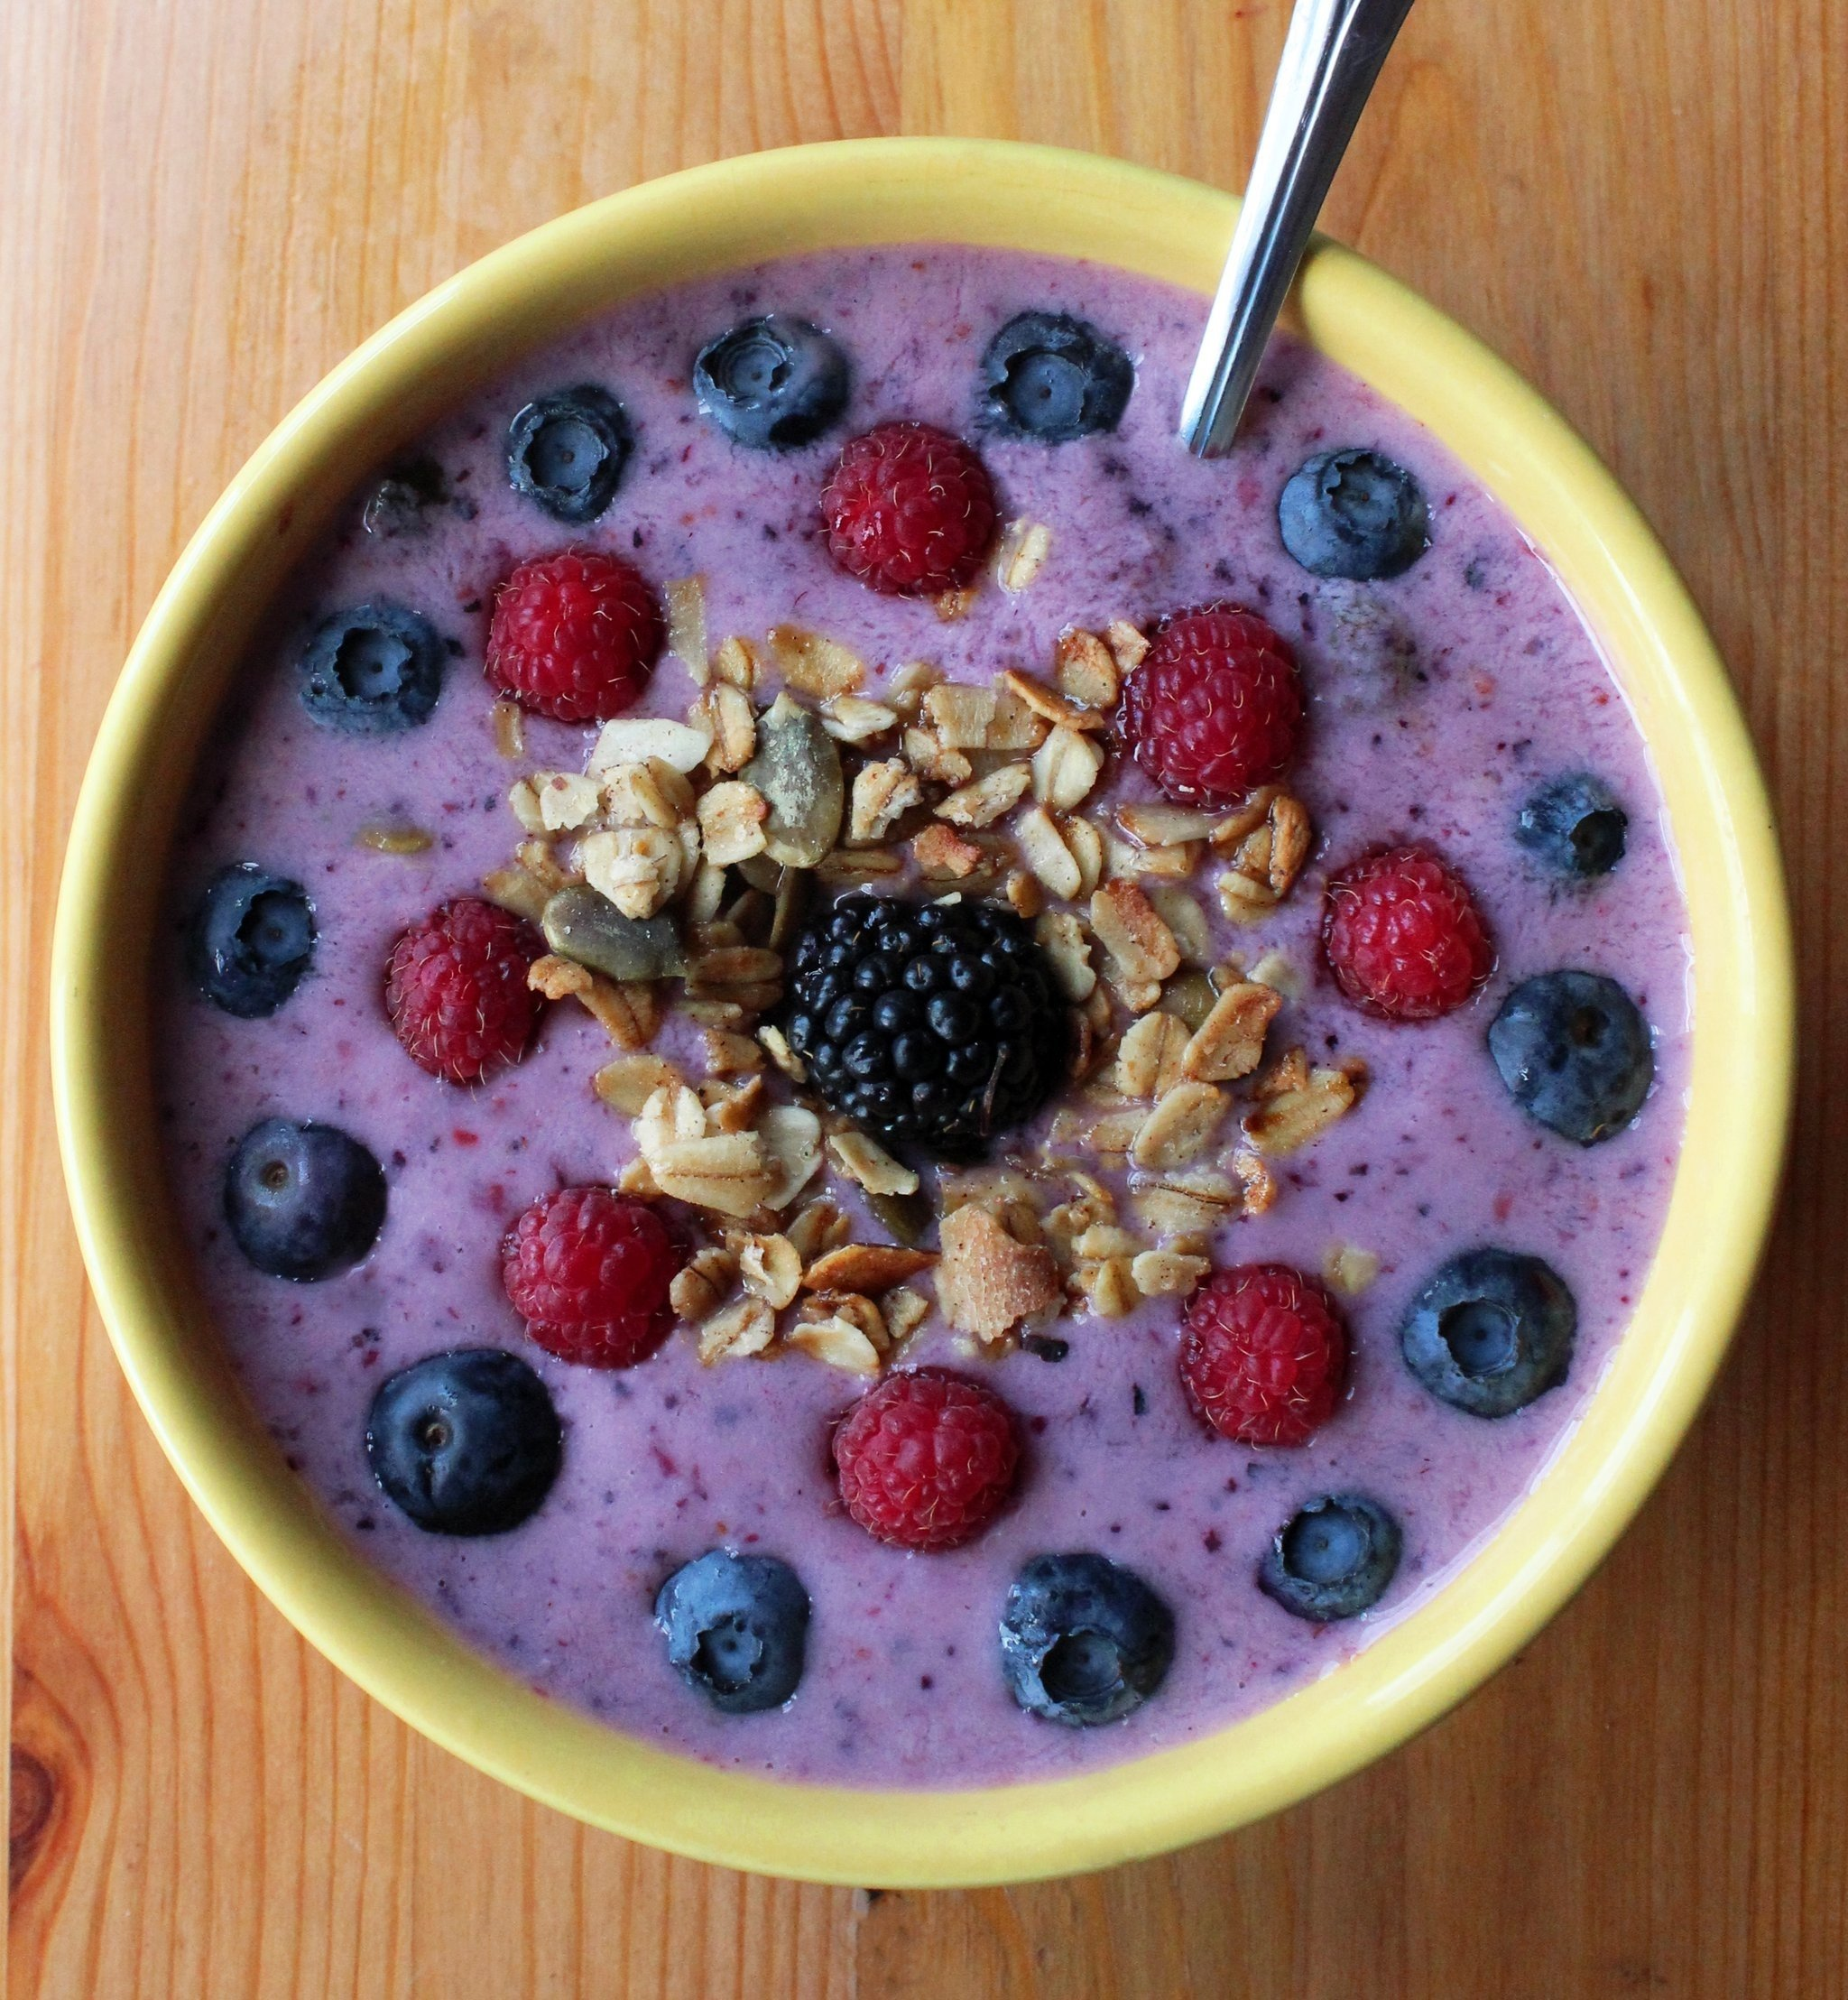 10 Fabulous Breakfast Ideas Under 300 Calories smoothie bowl recipe popsugar fitness